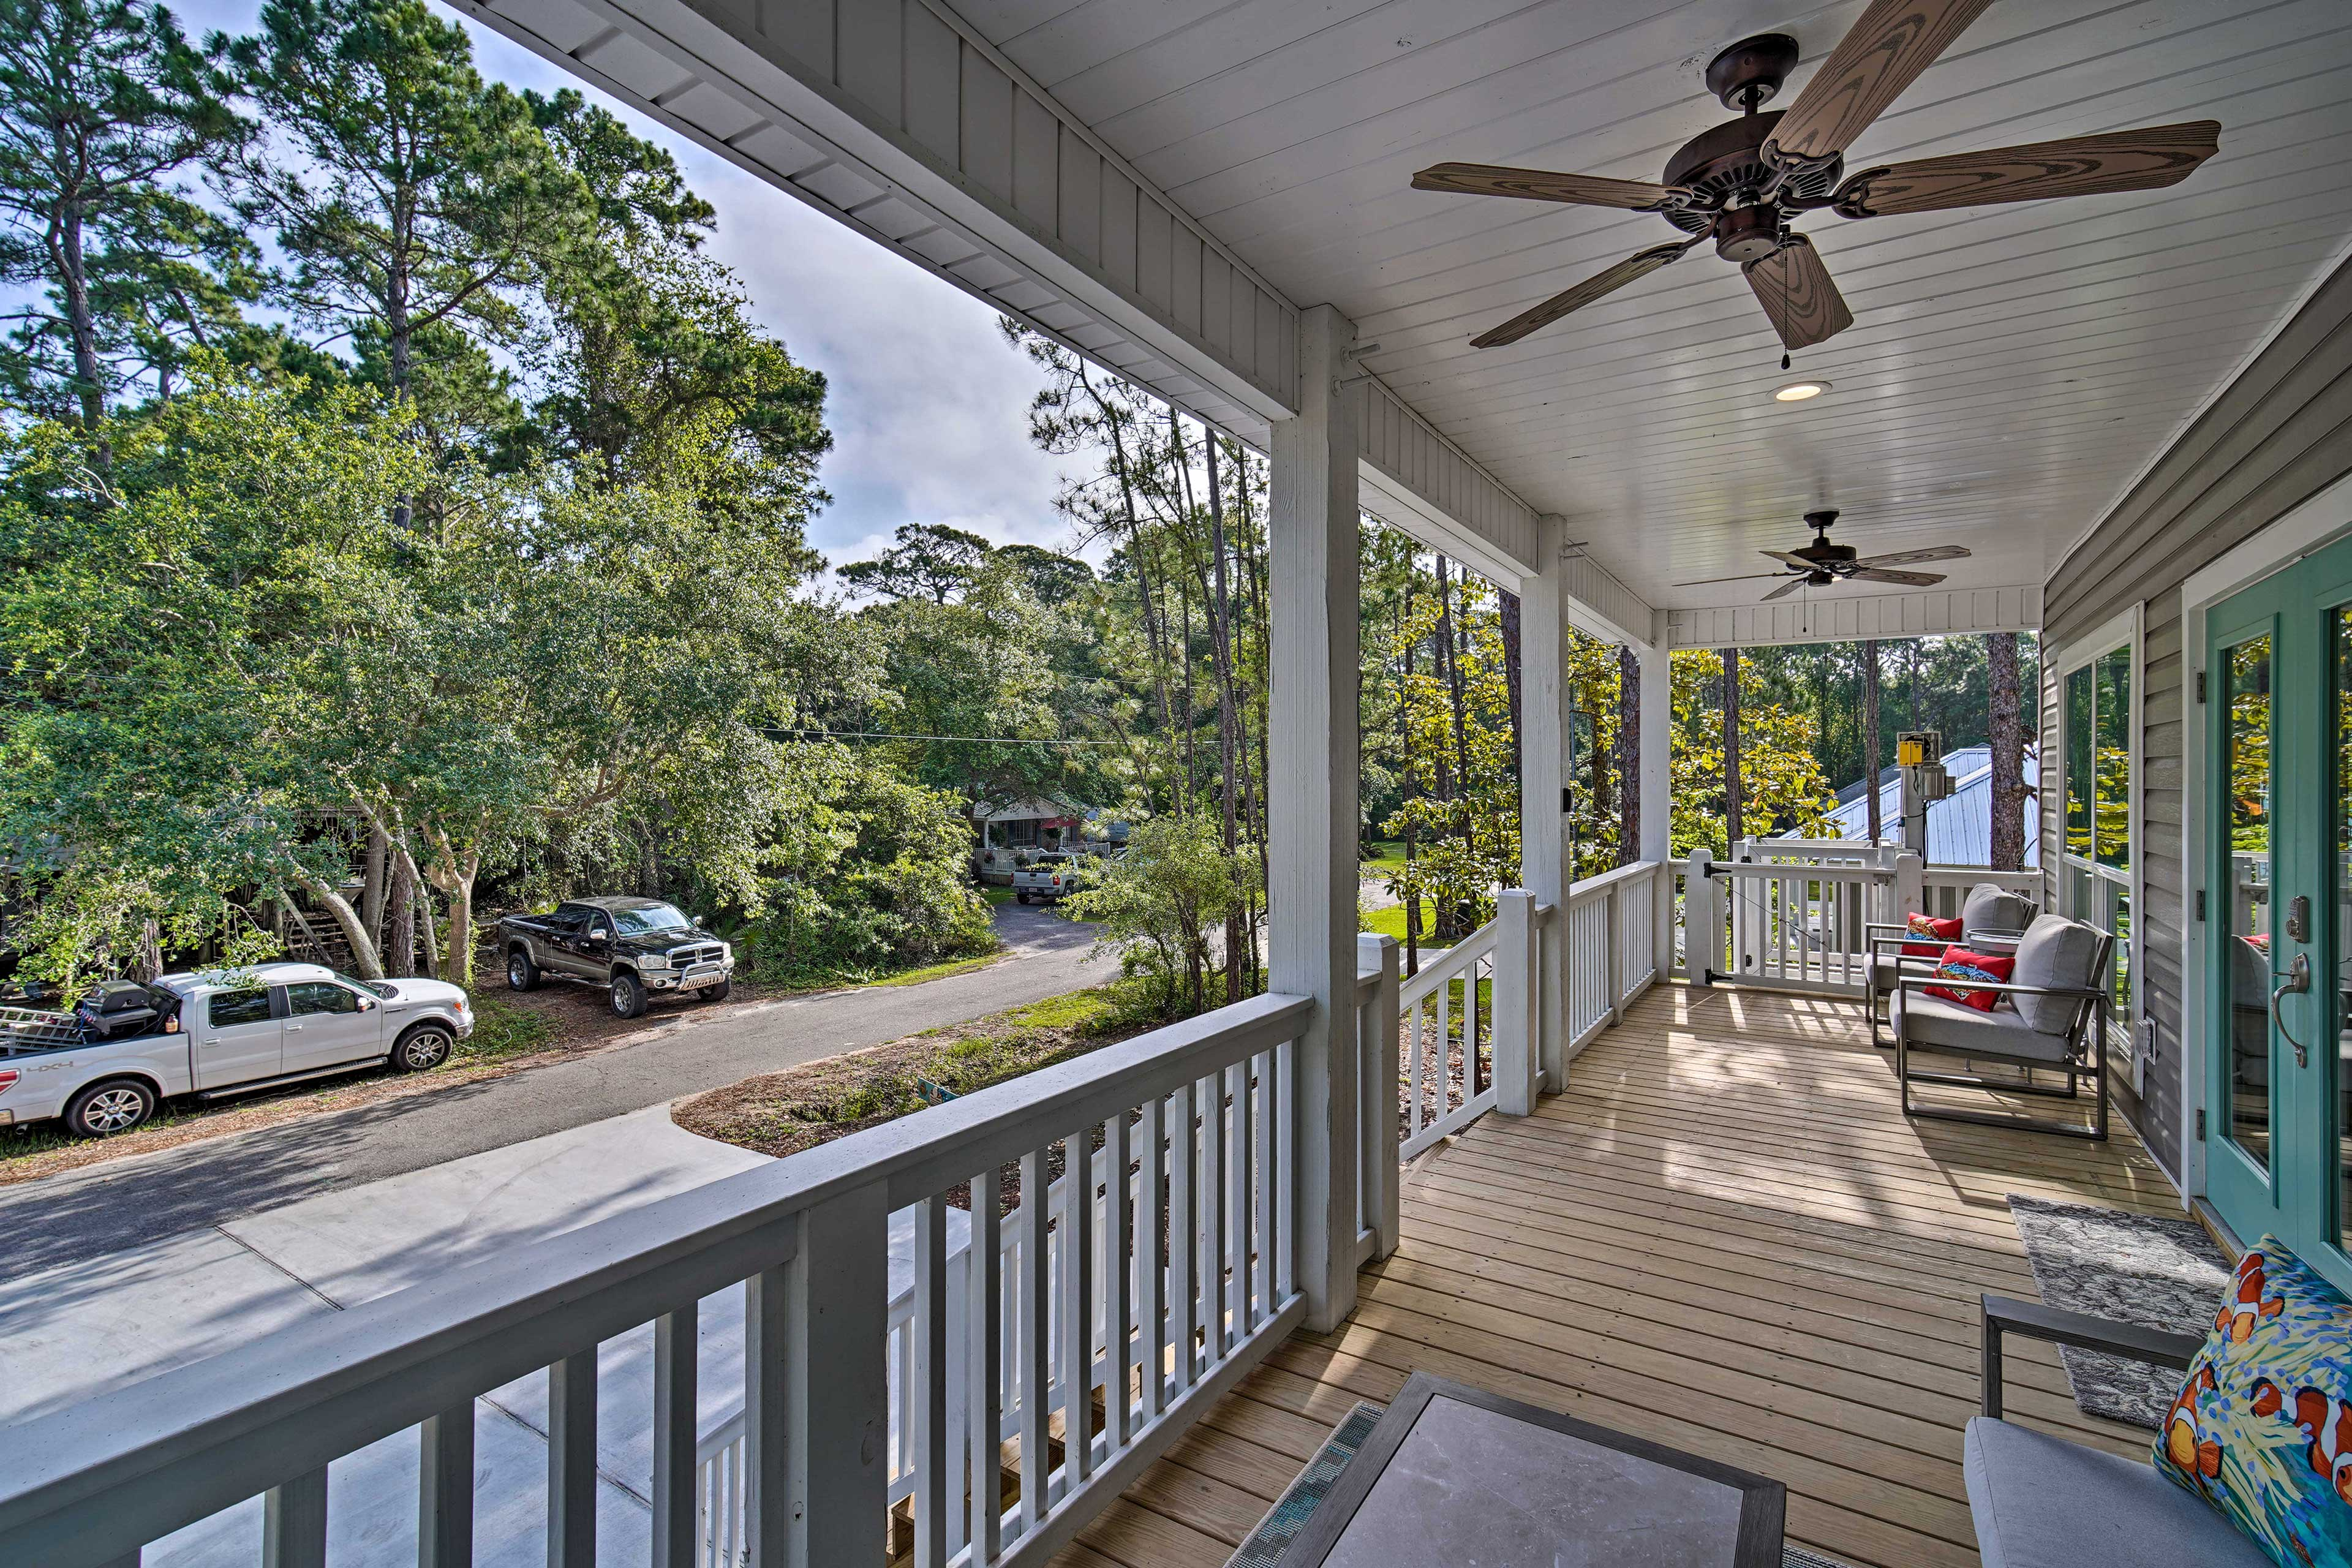 Start your mornings reading books on the private porch.